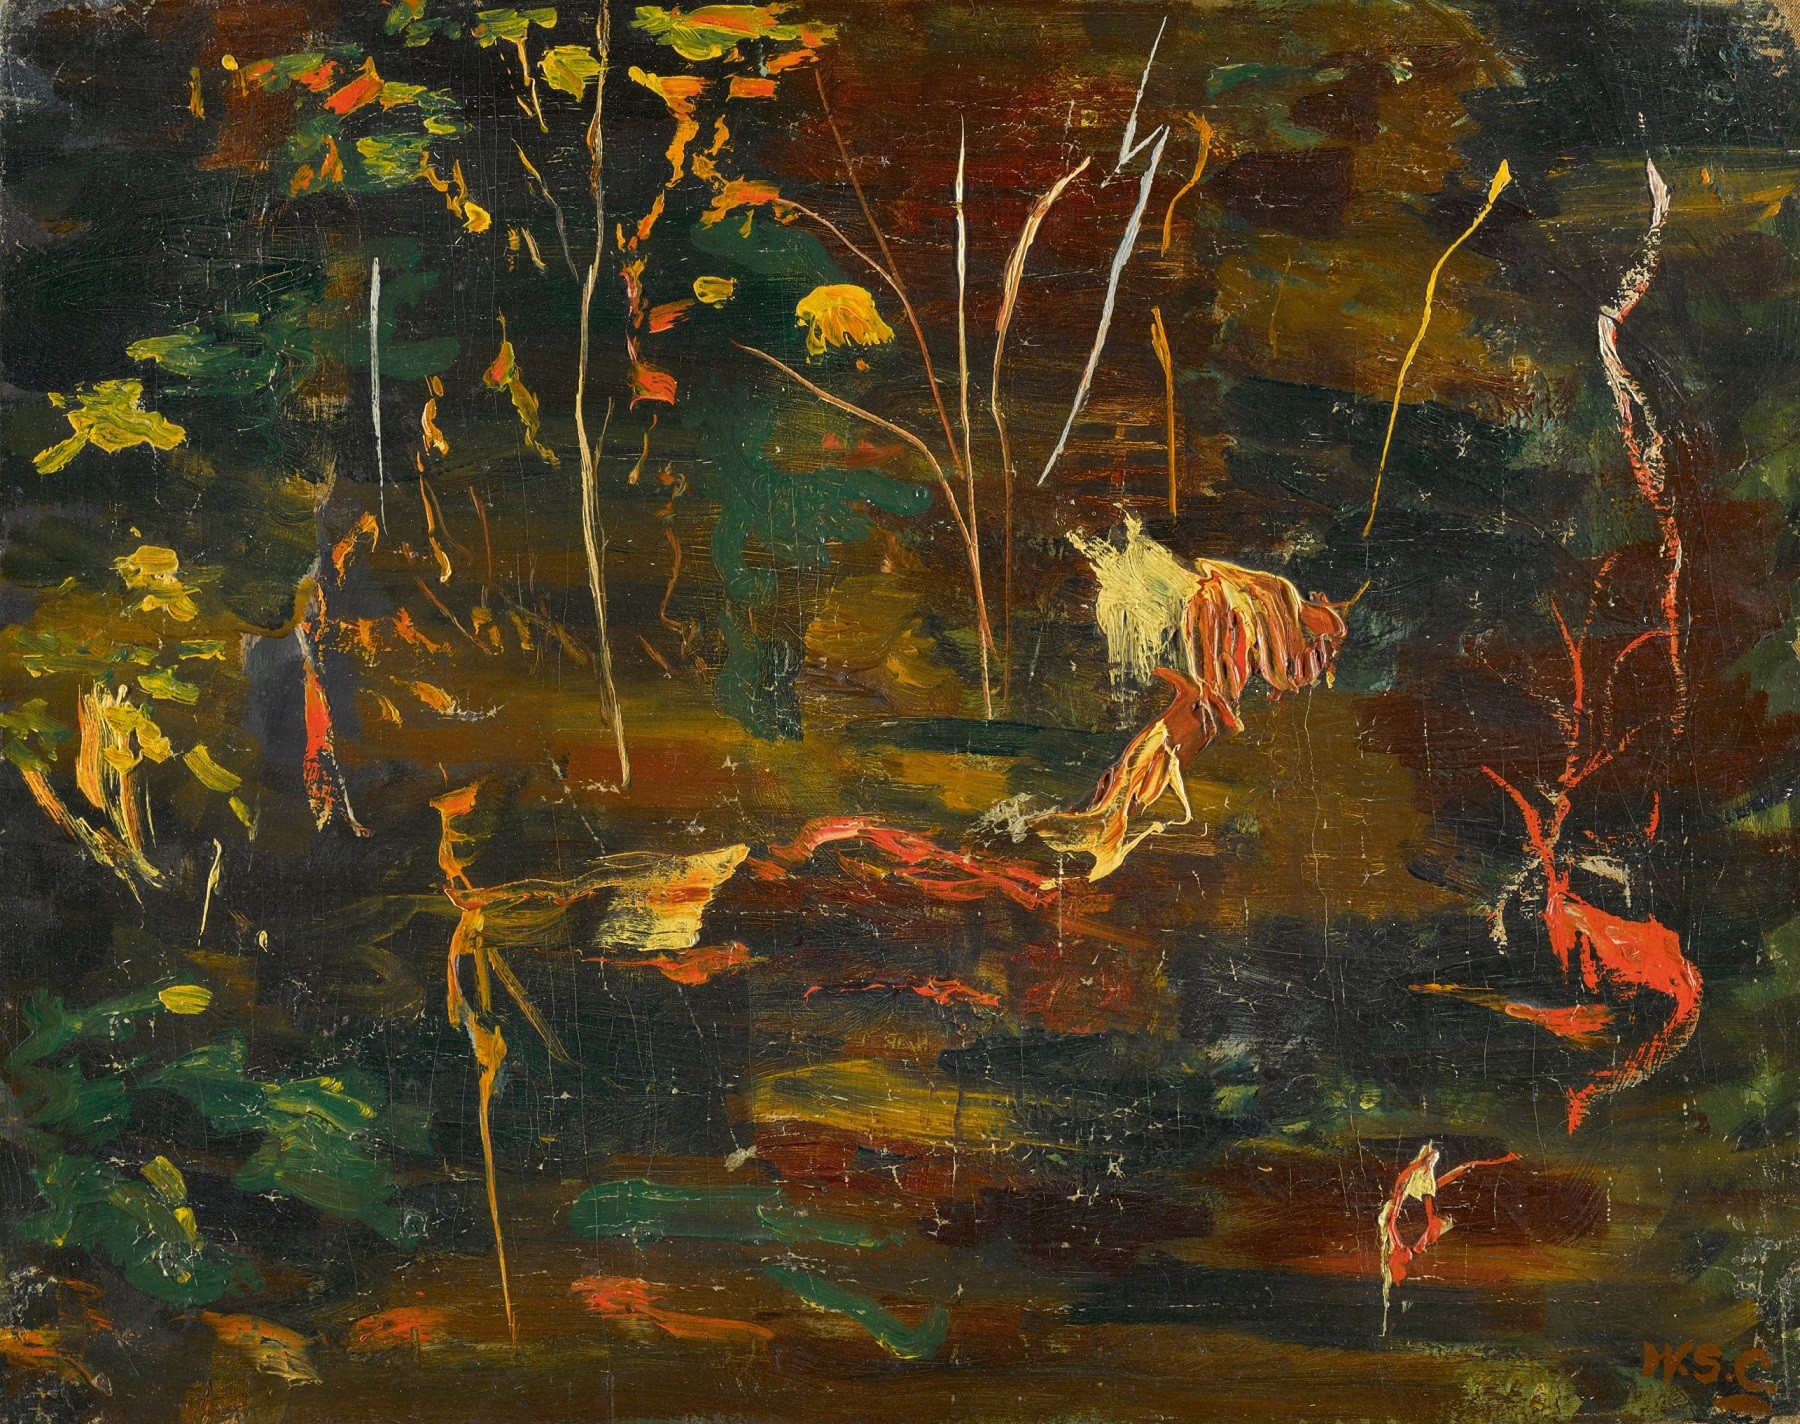 Sir Winston Churchill, The Goldfish Bowl At Chartwell, Oil on canvas 1962 (Sotheby's)